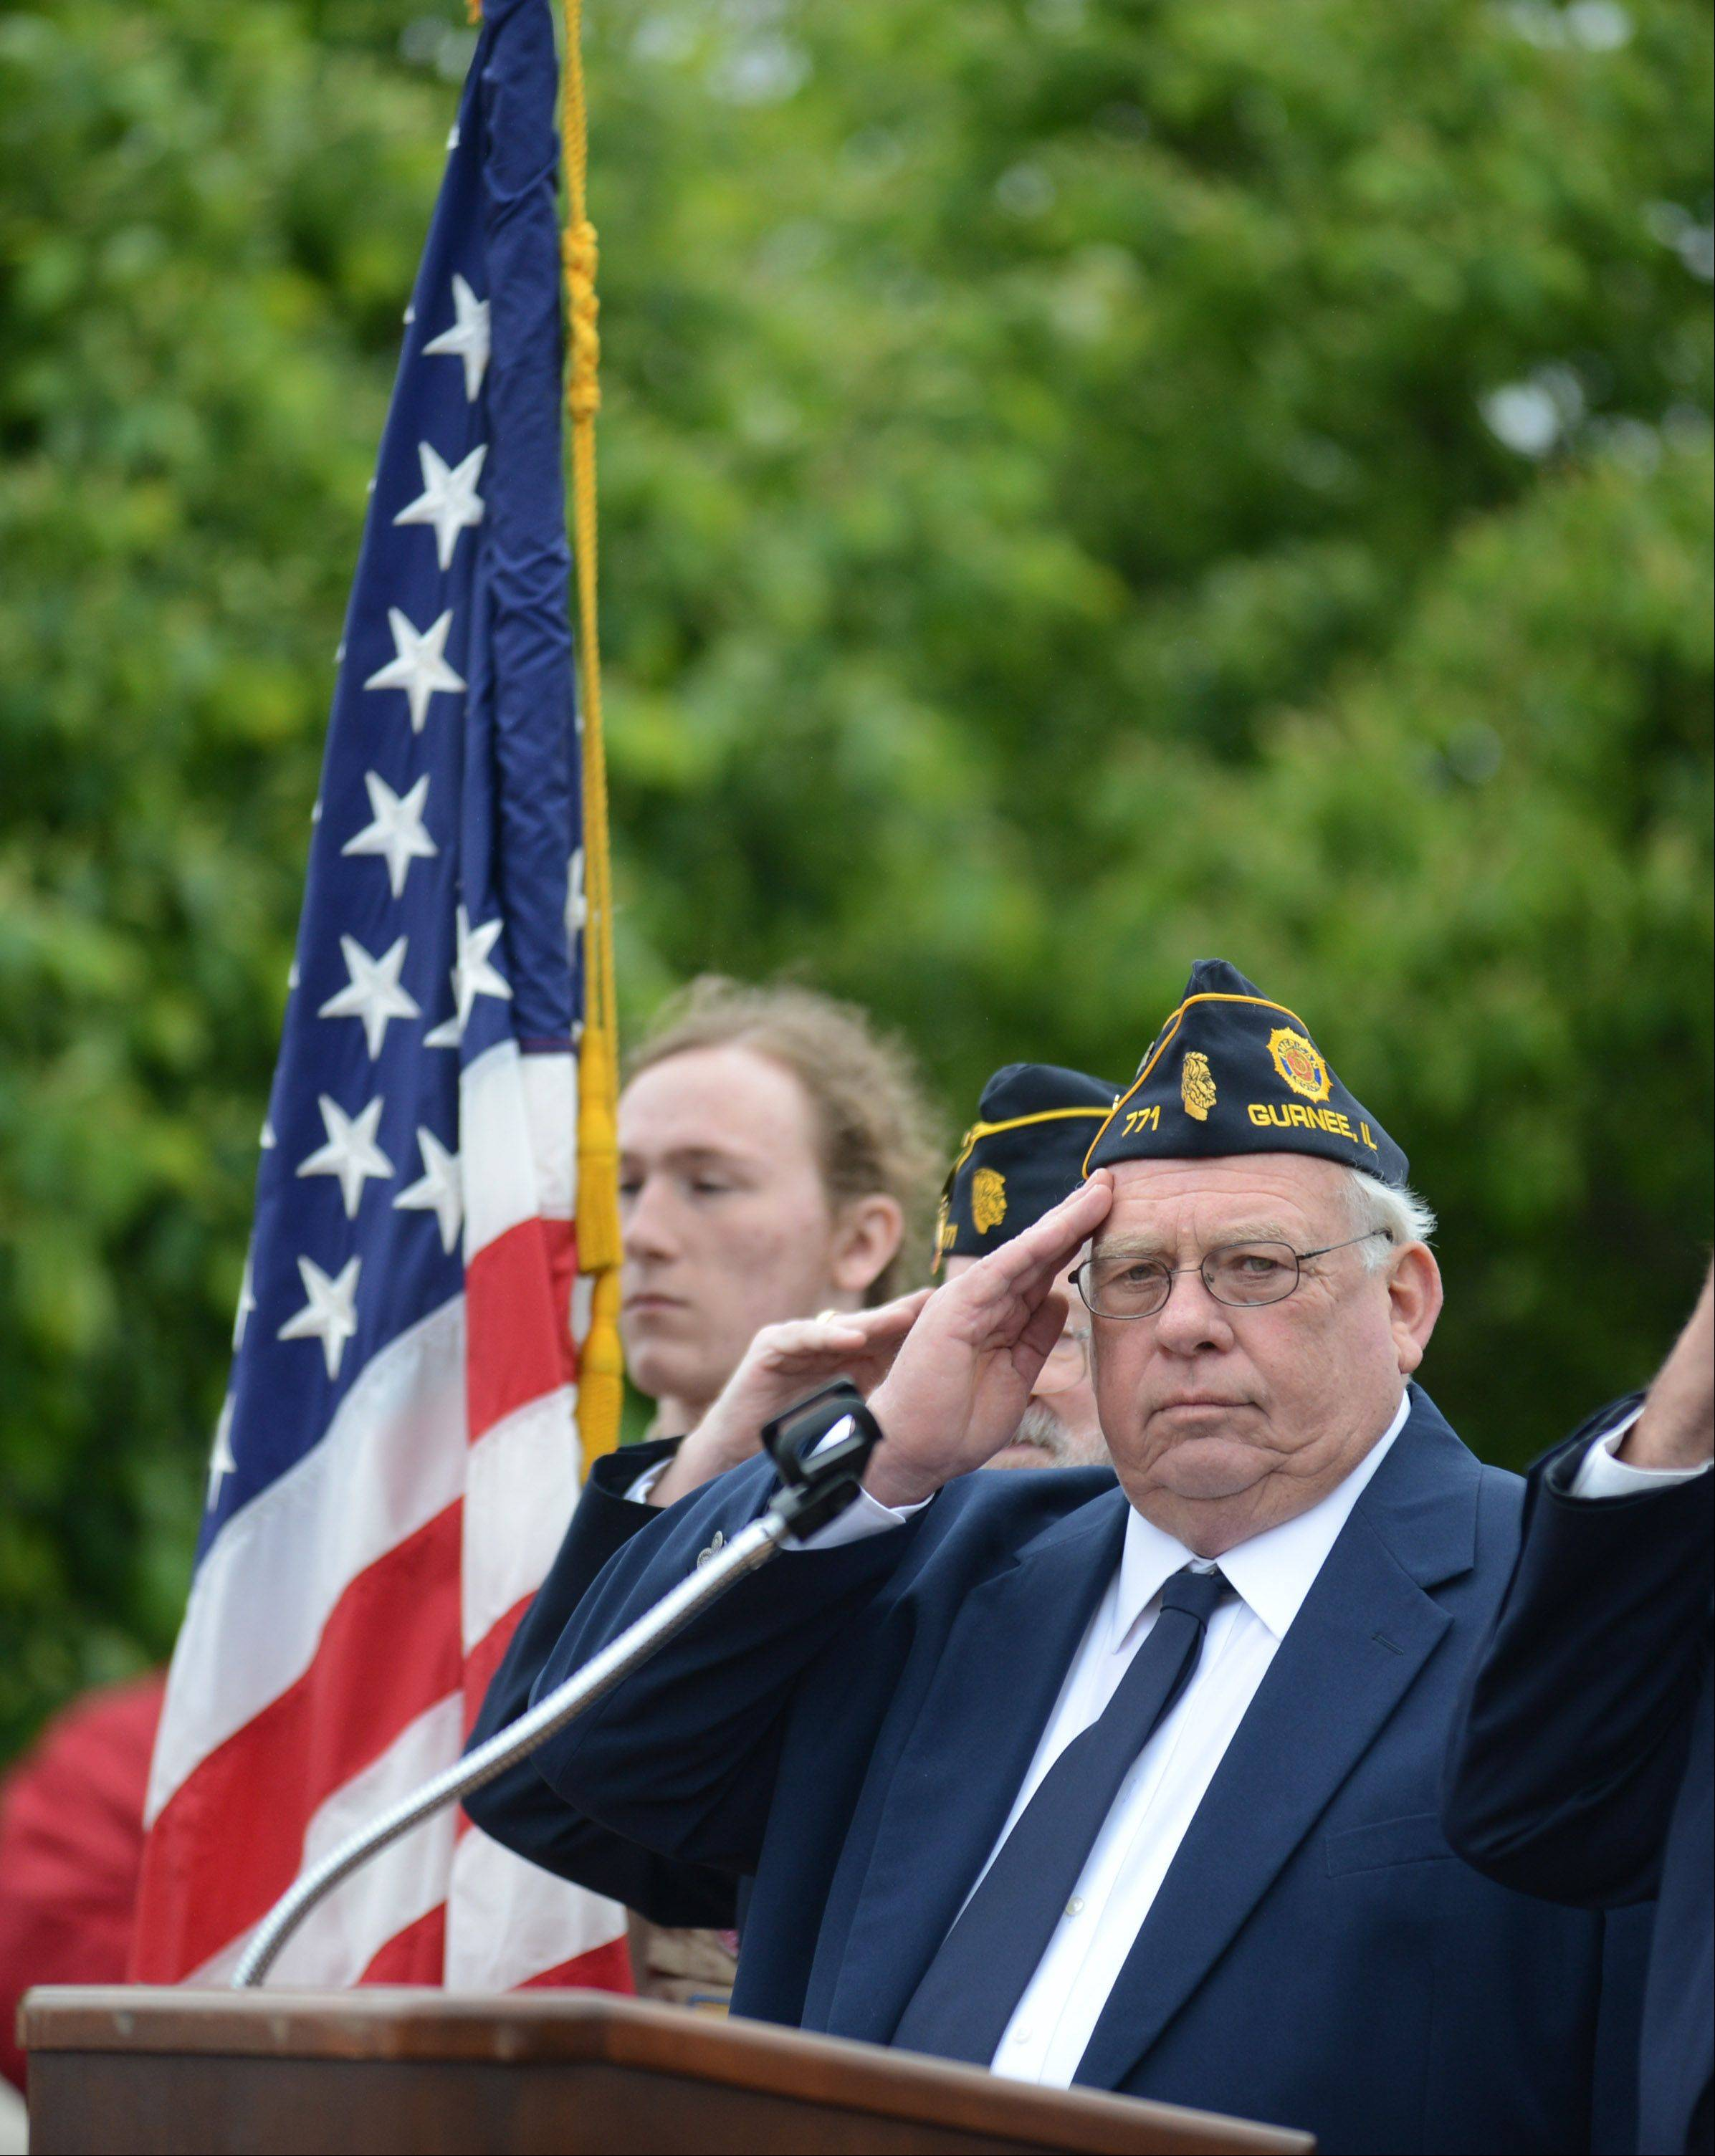 Gurnee American Legion Post 771 Cmdr. Gordon Finkel salutes during Monday's Memorial Day ceremony in Gurnee.